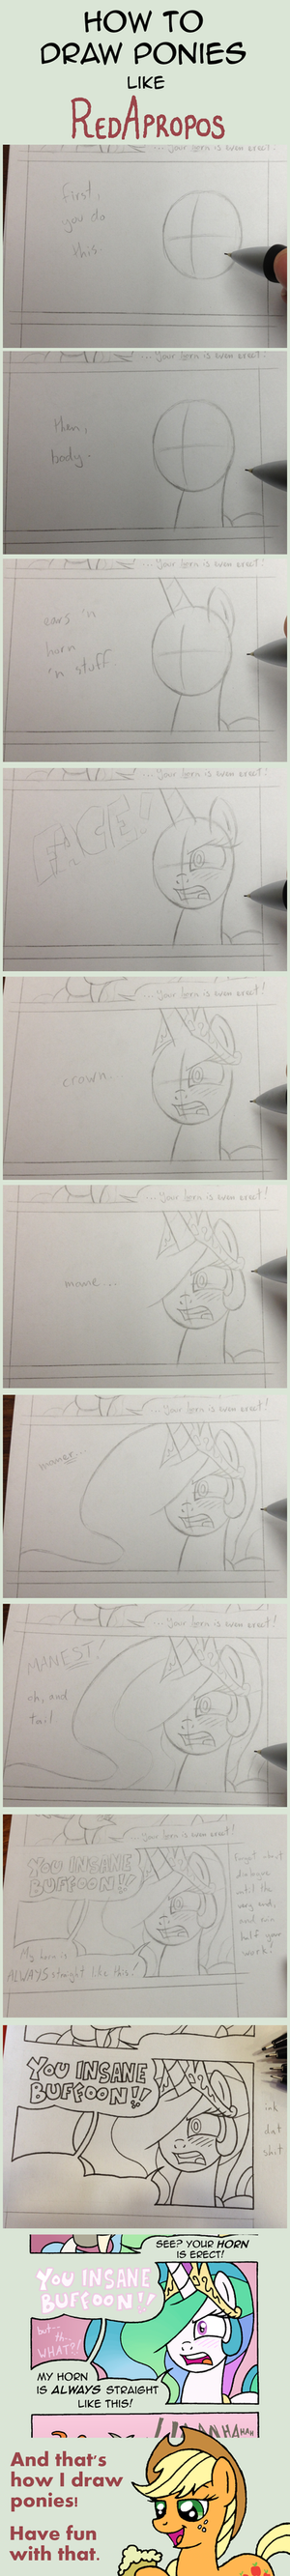 How RedApropos Draws Ponies by RedApropos